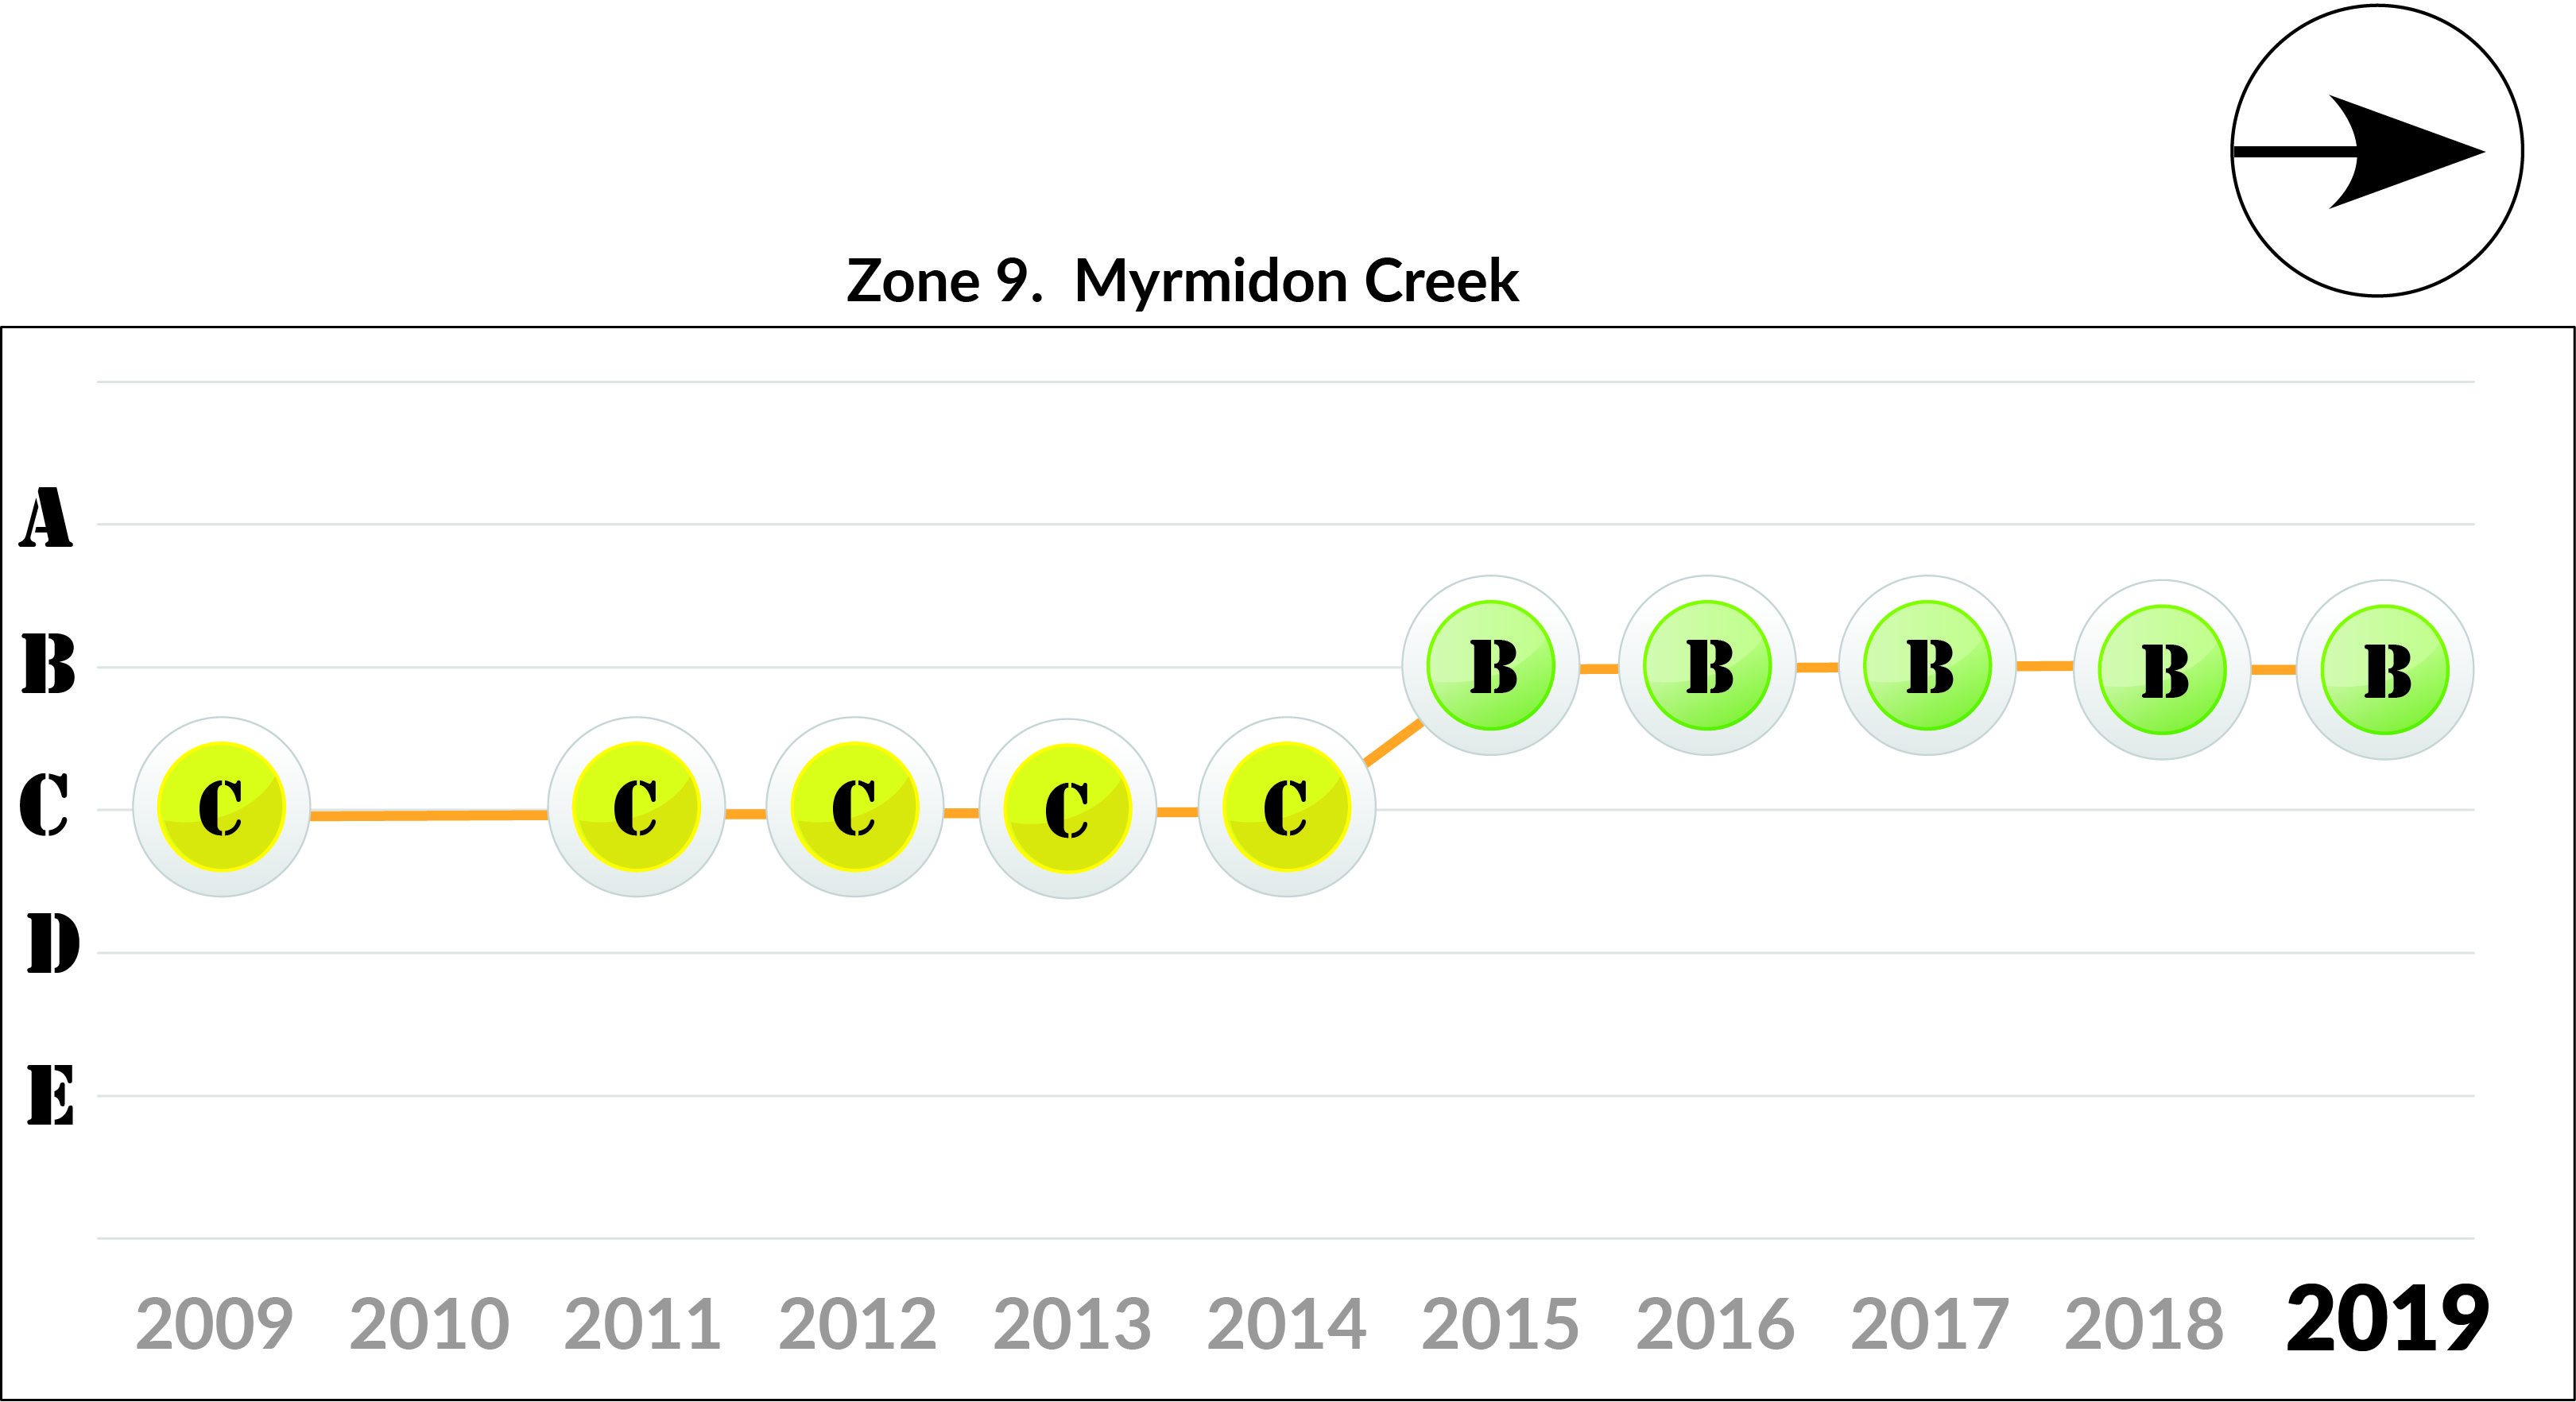 Zone 9 Myrmidon Creek trends